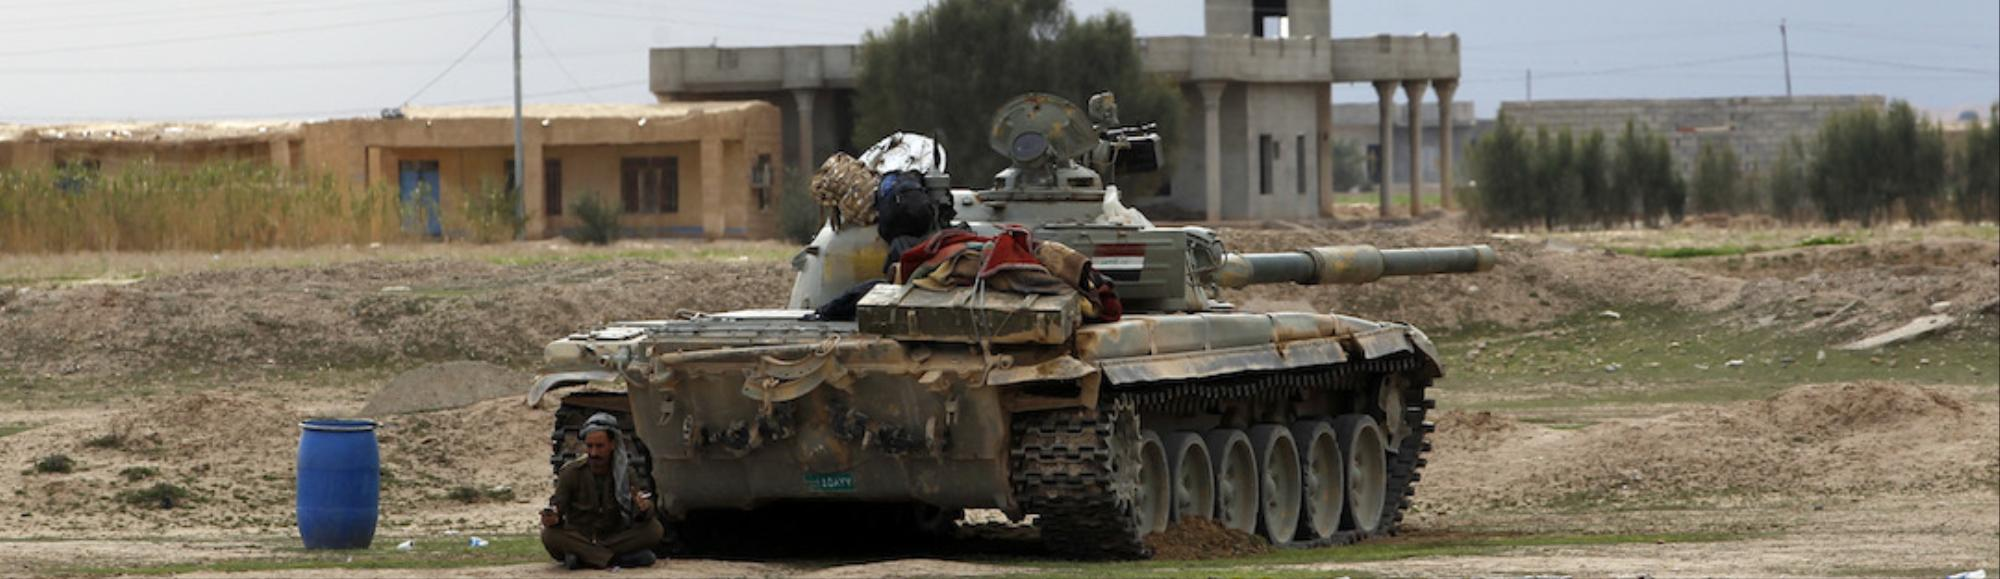 Iraqi Forces Advance in the Battle for Tikrit, With a Little Help from Iran